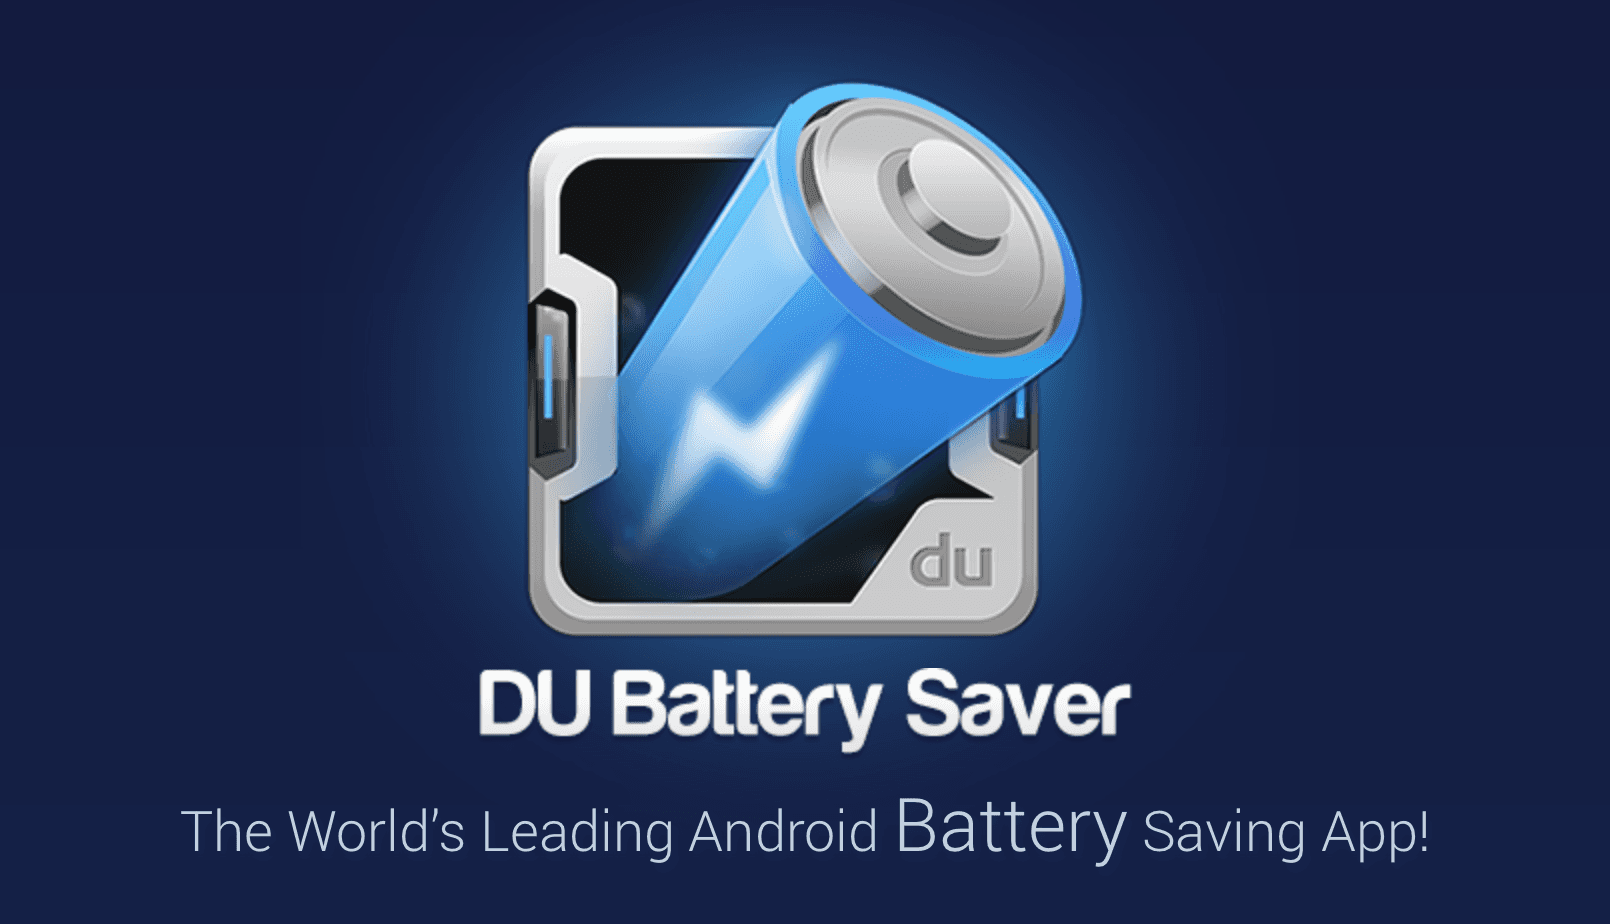 DU Battery Saver Image